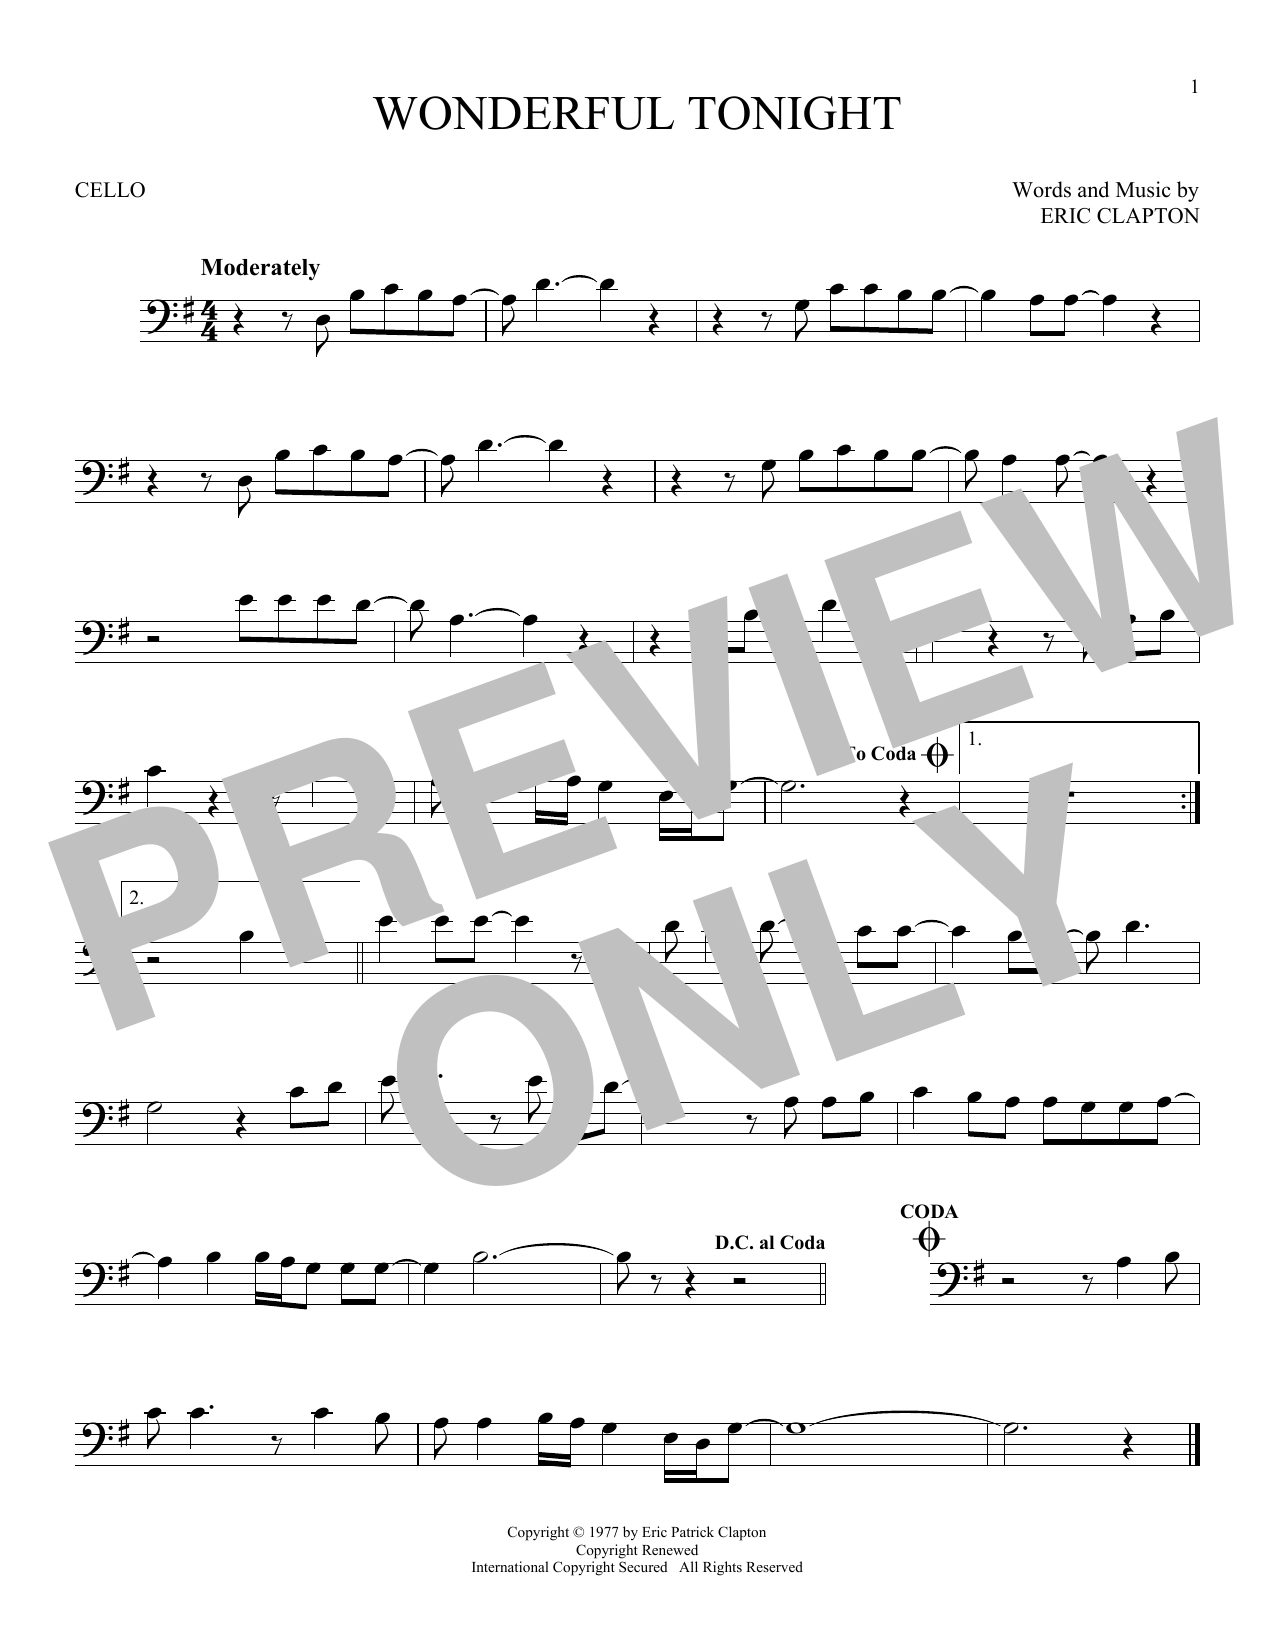 Wonderful Tonight Sheet Music